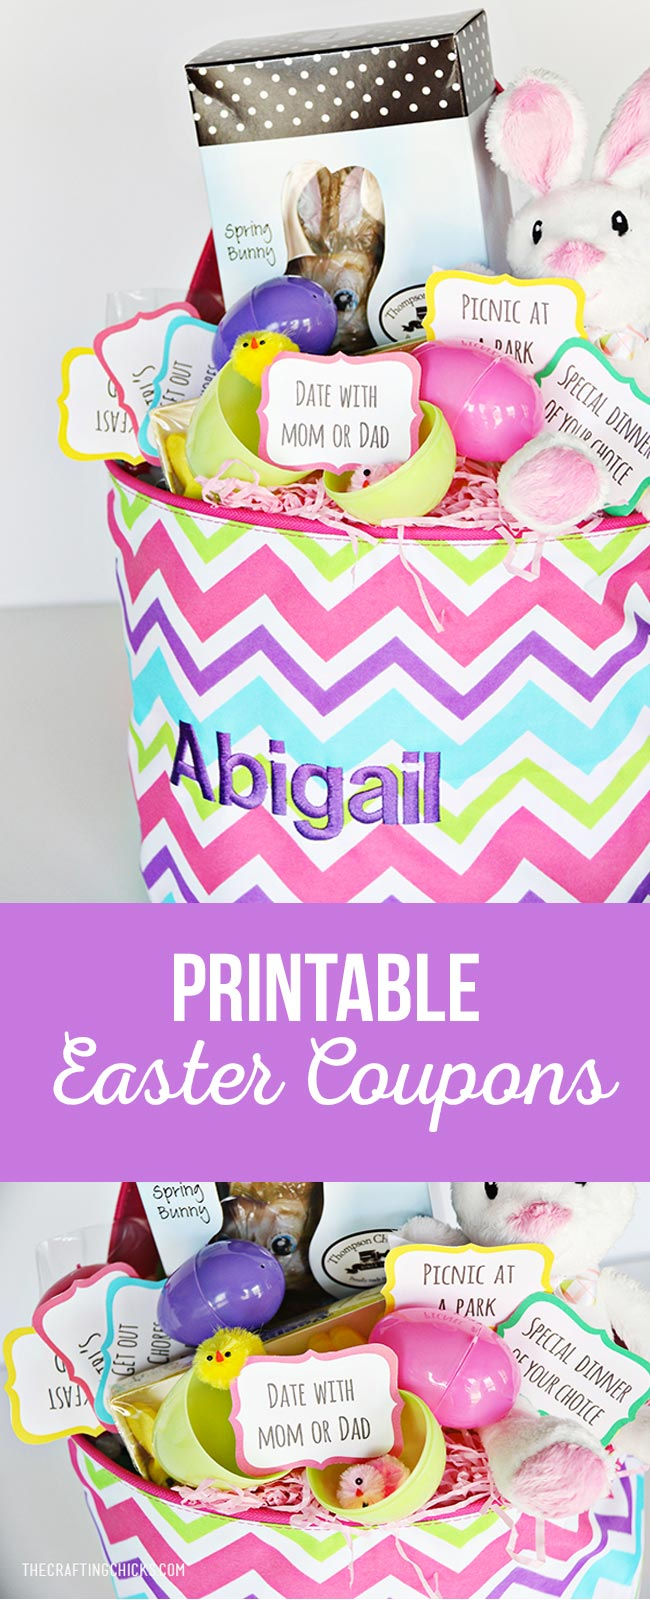 Printable Easter Coupons Egg Fillers